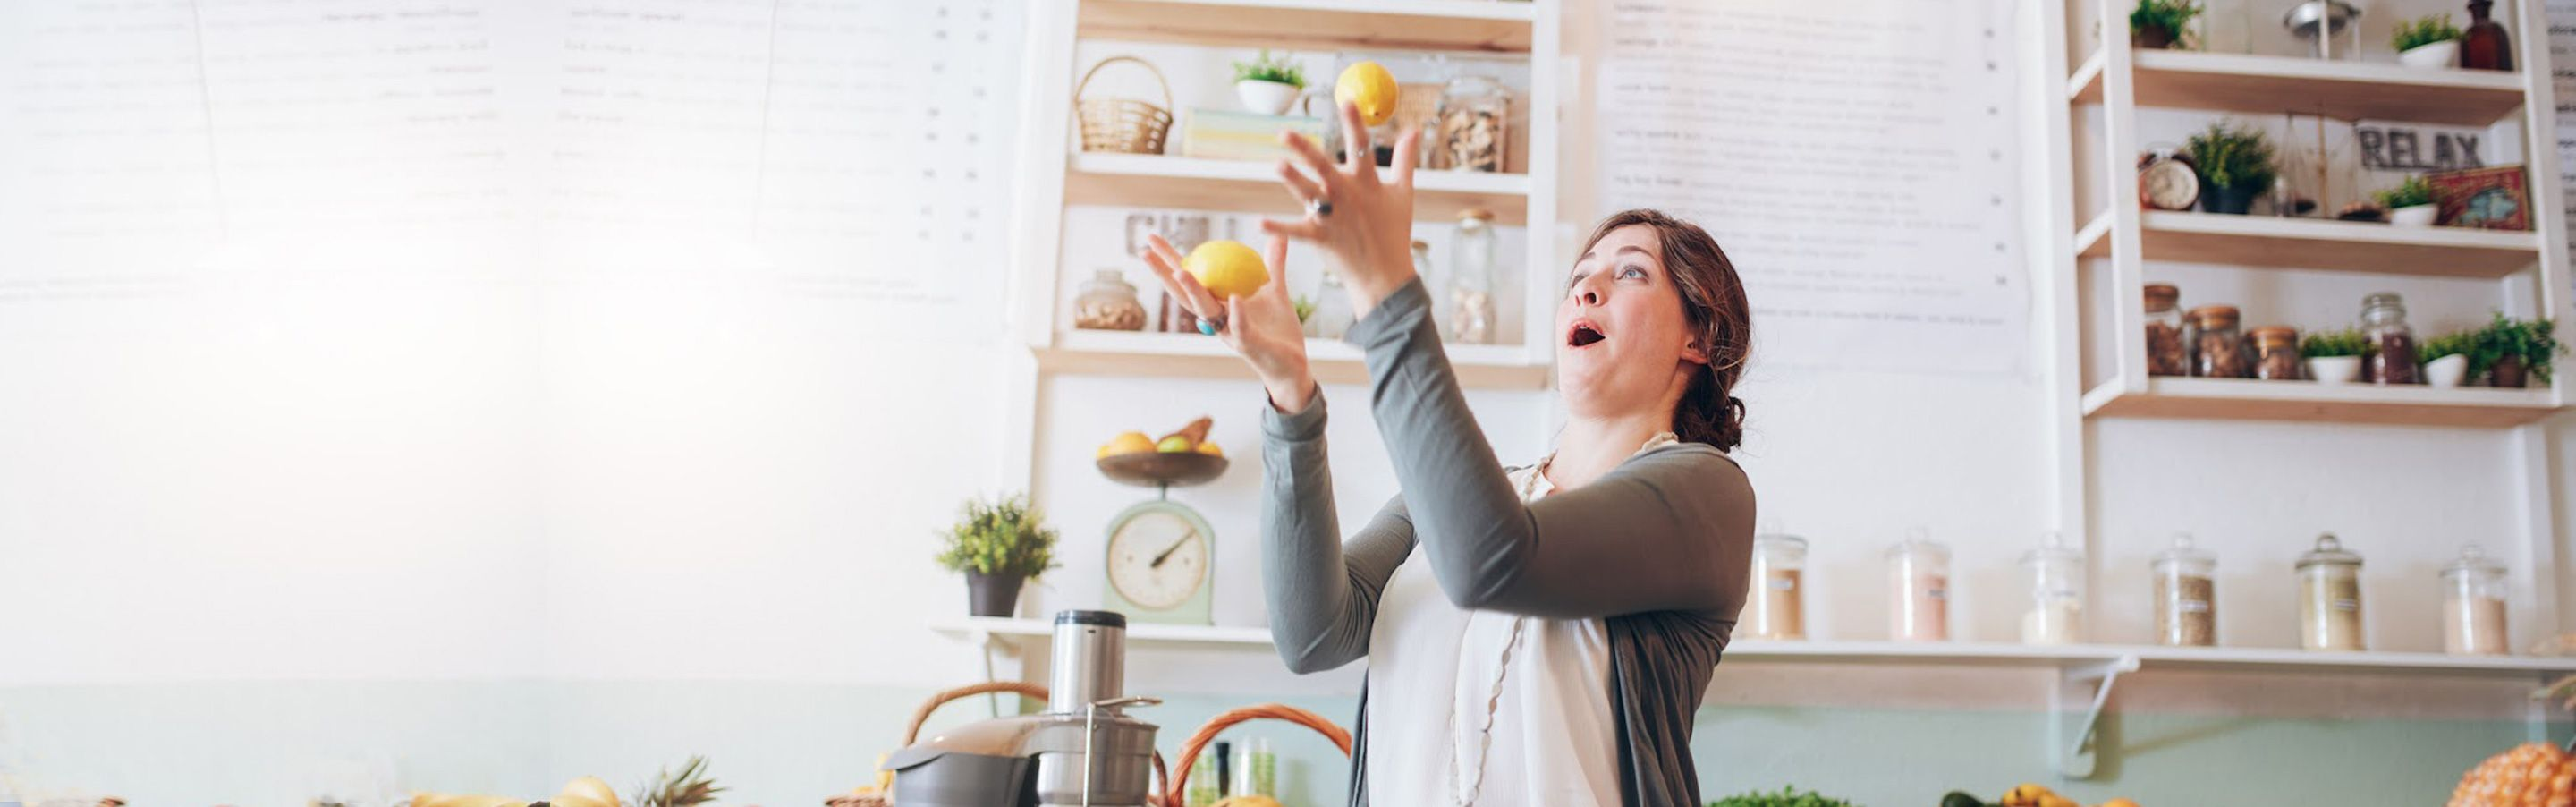 Woman juggling lemons in the kitchen.